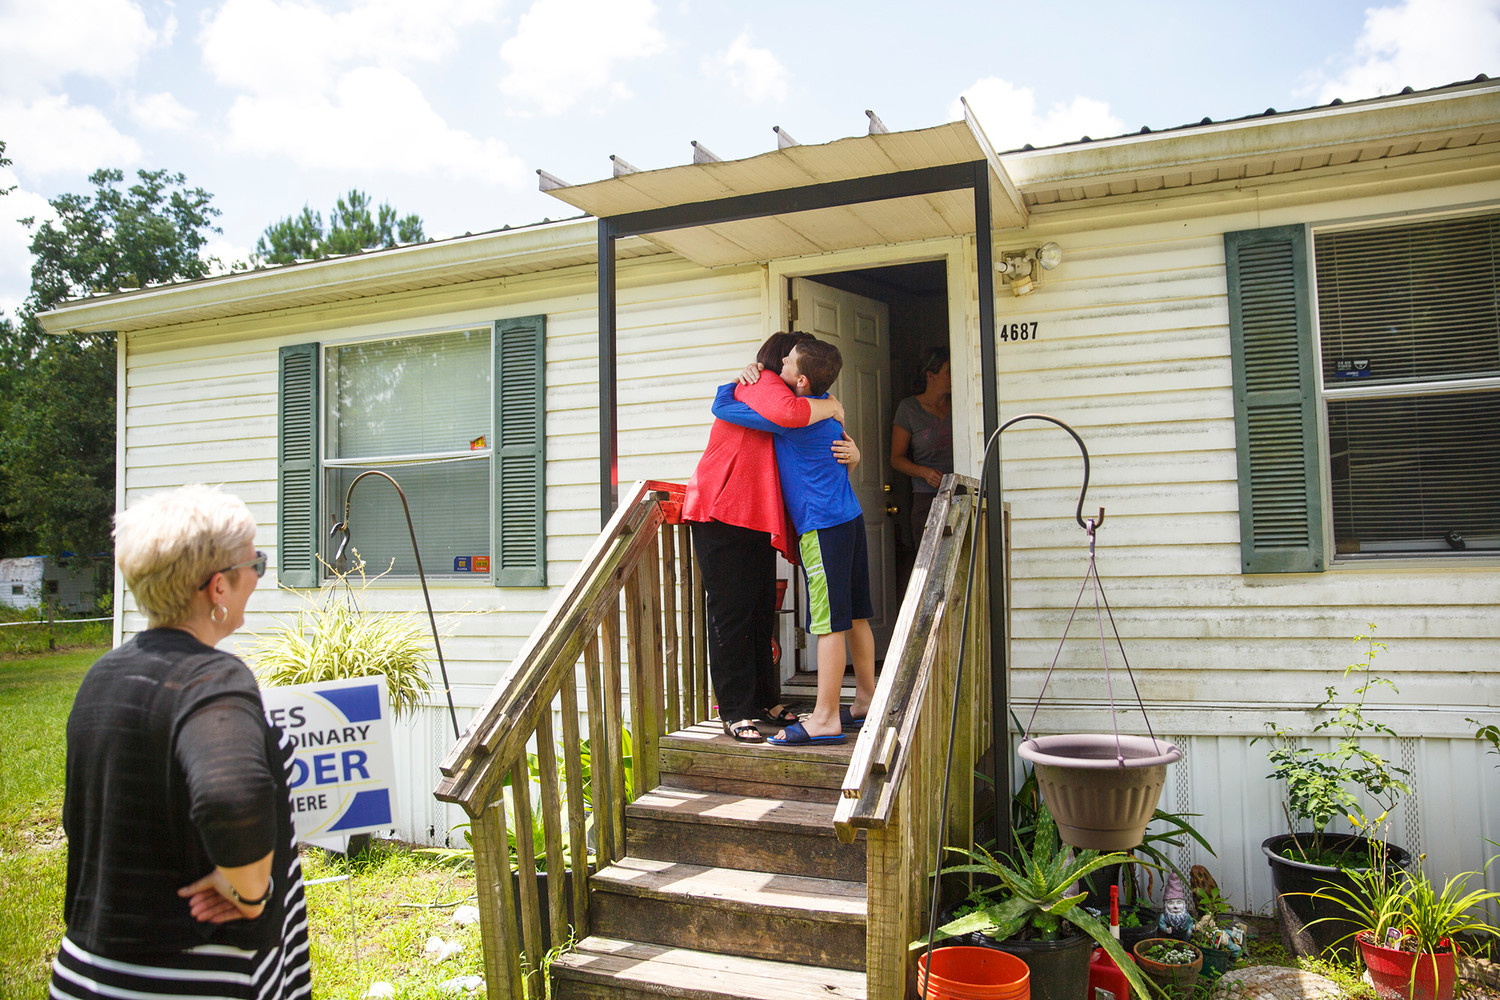 Wilkinson Elementary School Principal Heather Teto, right, hugs student Jessie Kelley Jr.,10, Monday when Teto and the school's assistant principal Carolyn Hayward delivered a sign to Kelley's house identifying him as one of the school's top readers coming out of fourth grade.